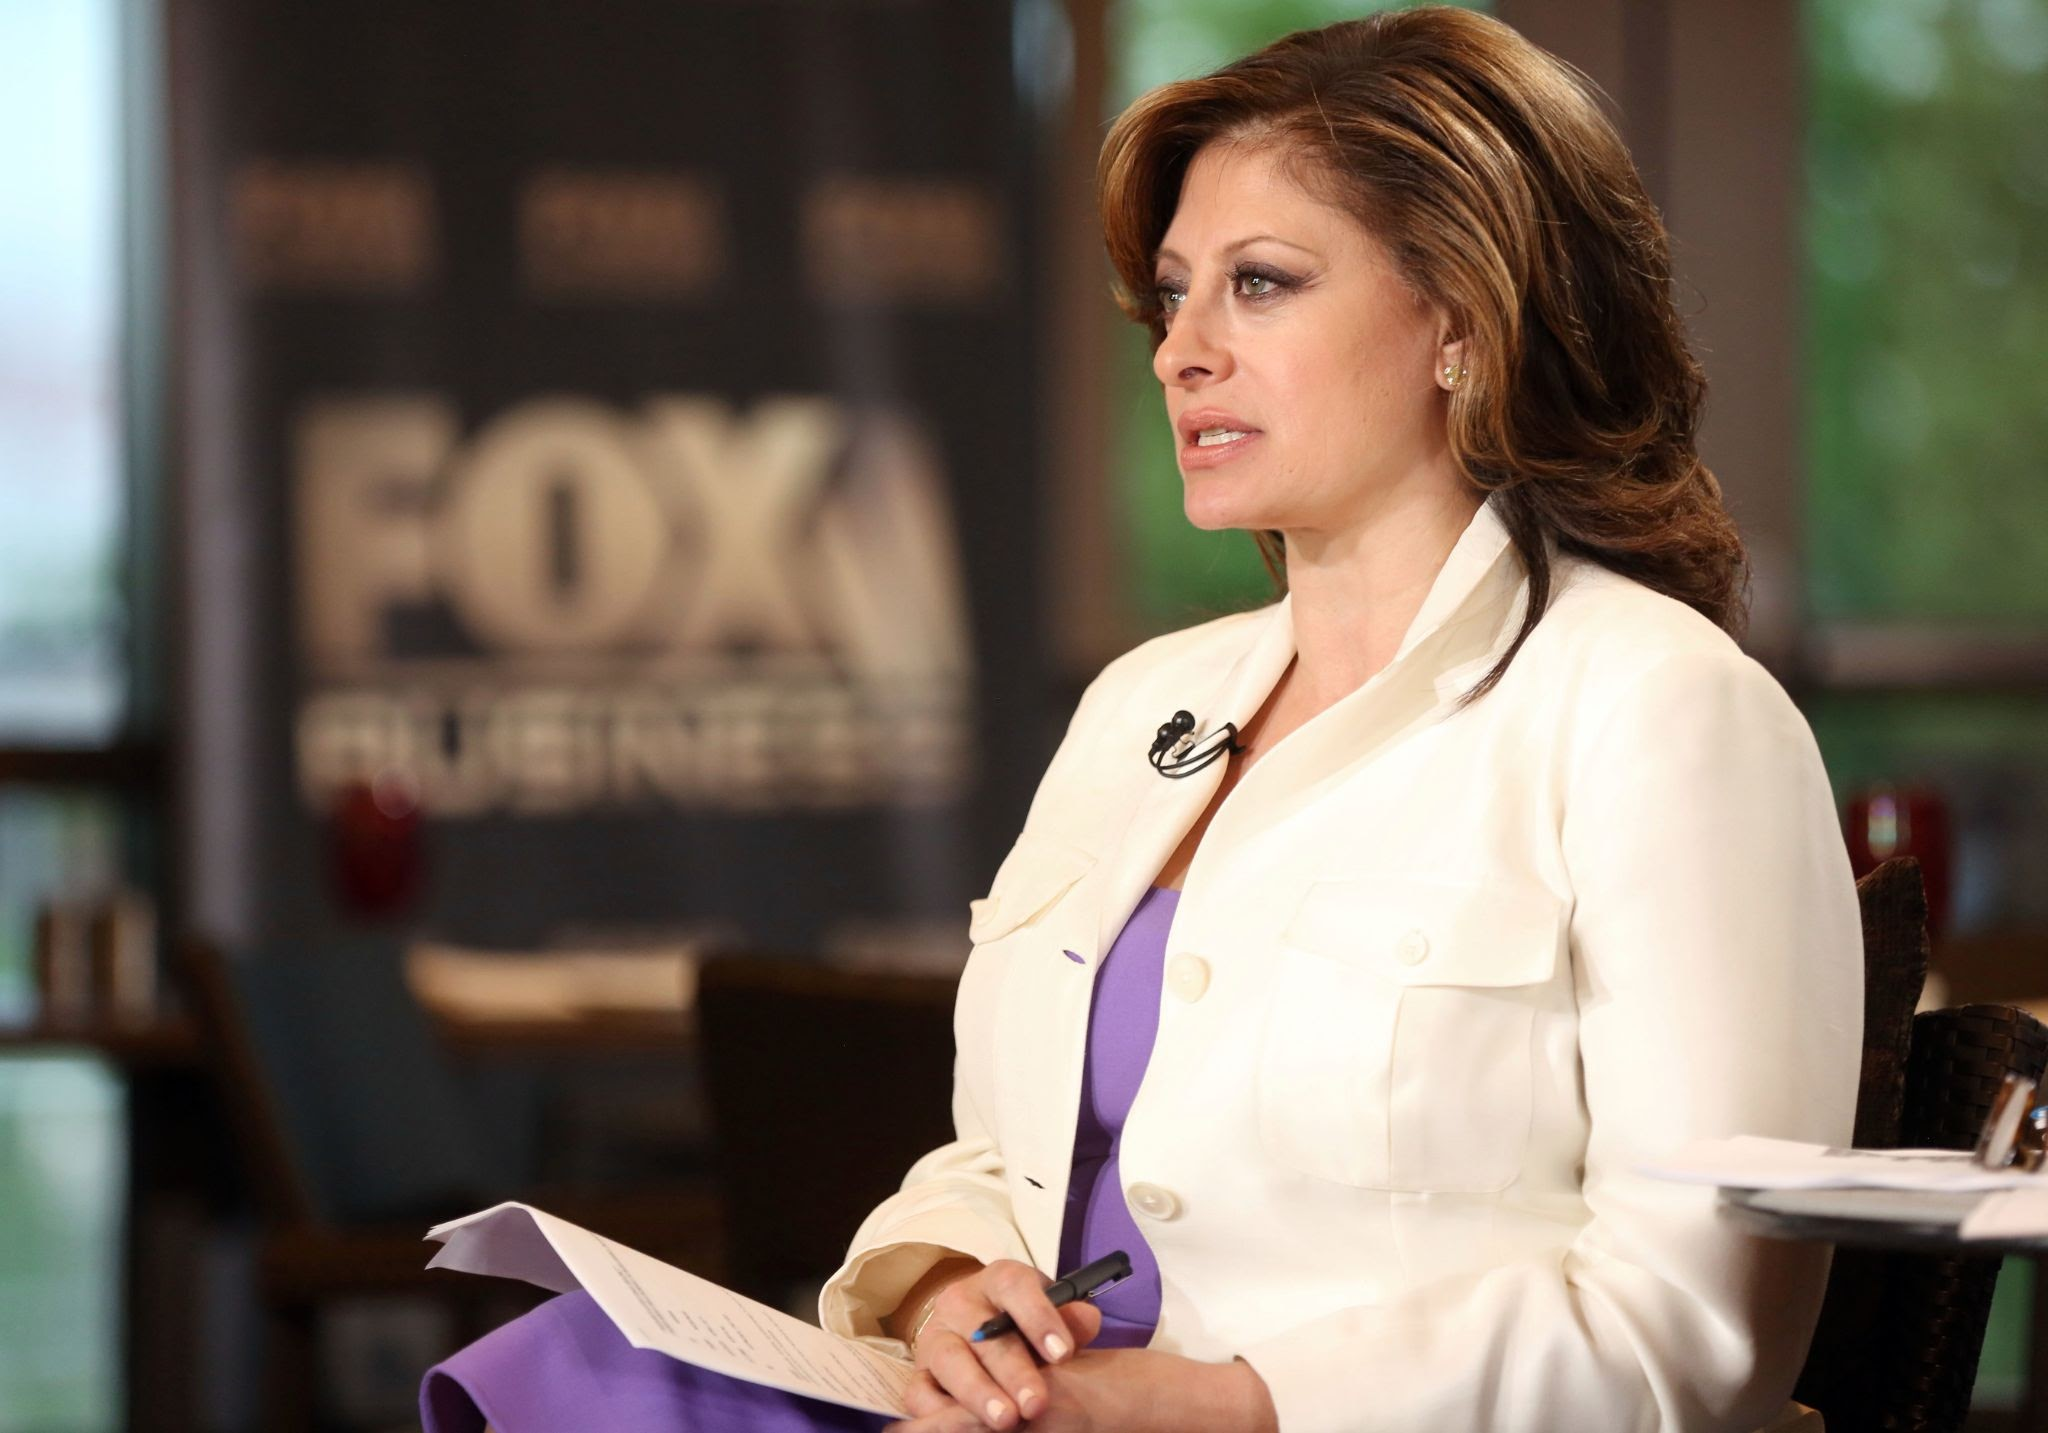 Opinion: Maria Bartiromo delivers another troubling interview with Donald Trump